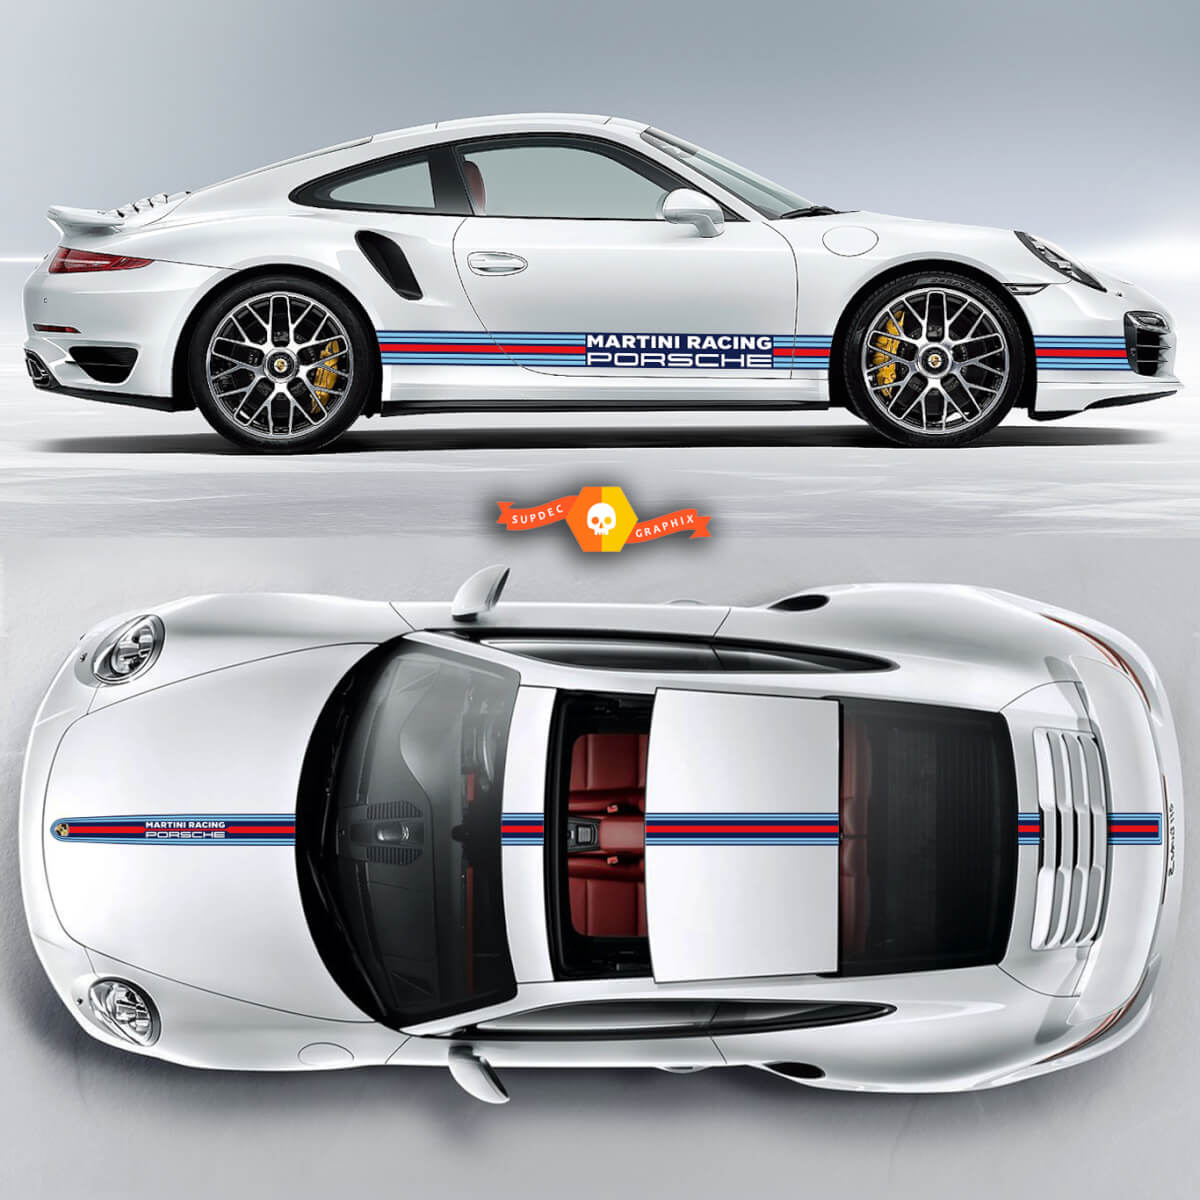 Porsche Martini Racing Stripes For Carrera Cayman  Boxster Or Any Porsche Full Kit